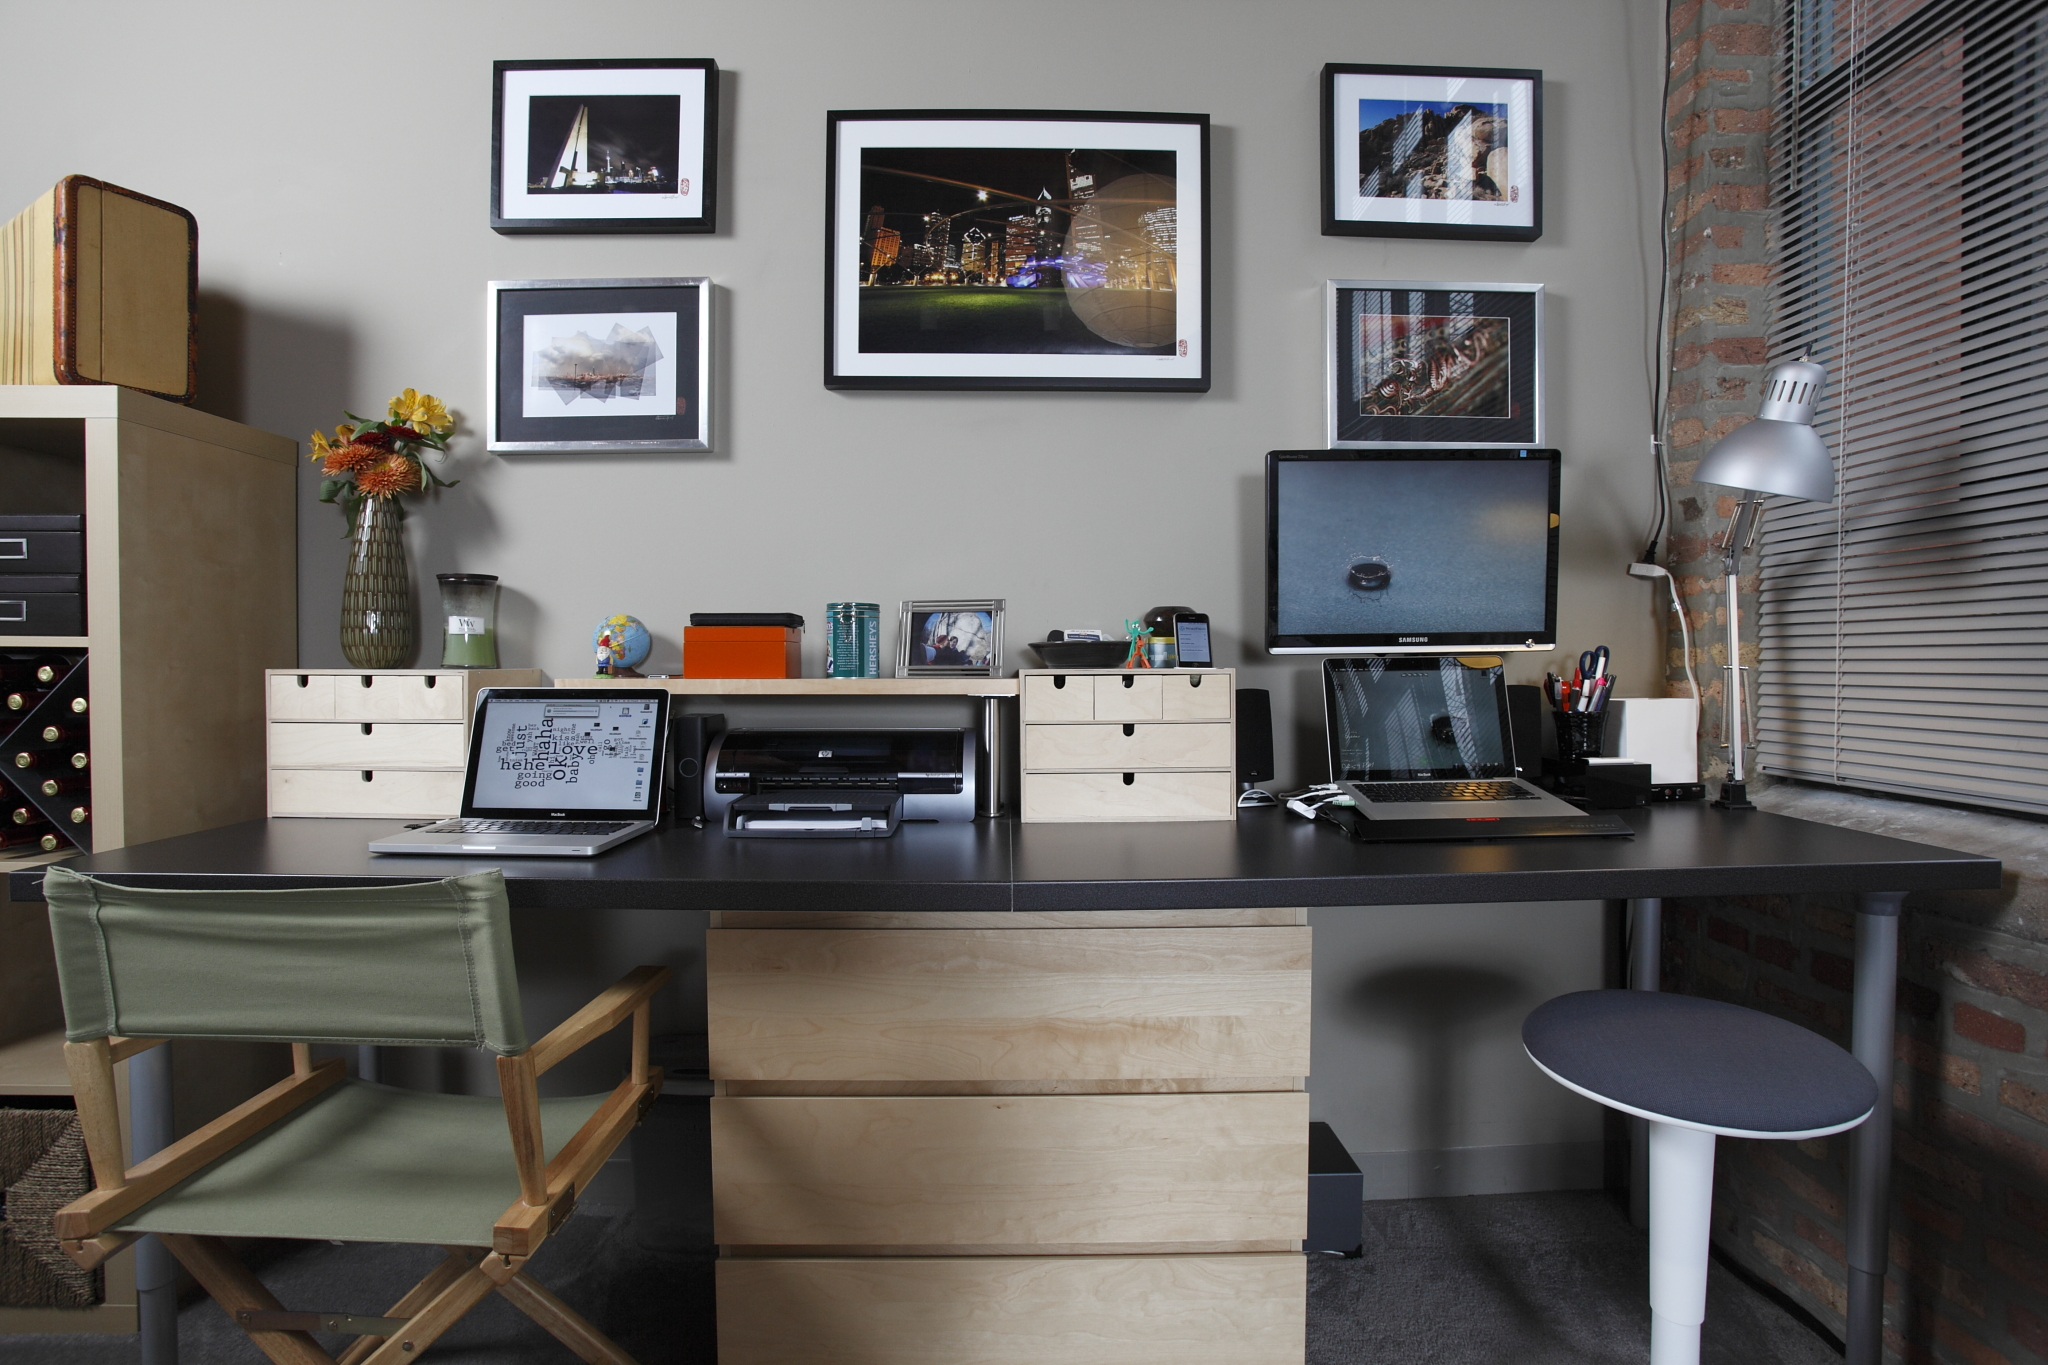 Reworking The Home Office With A Dash Of IKEA